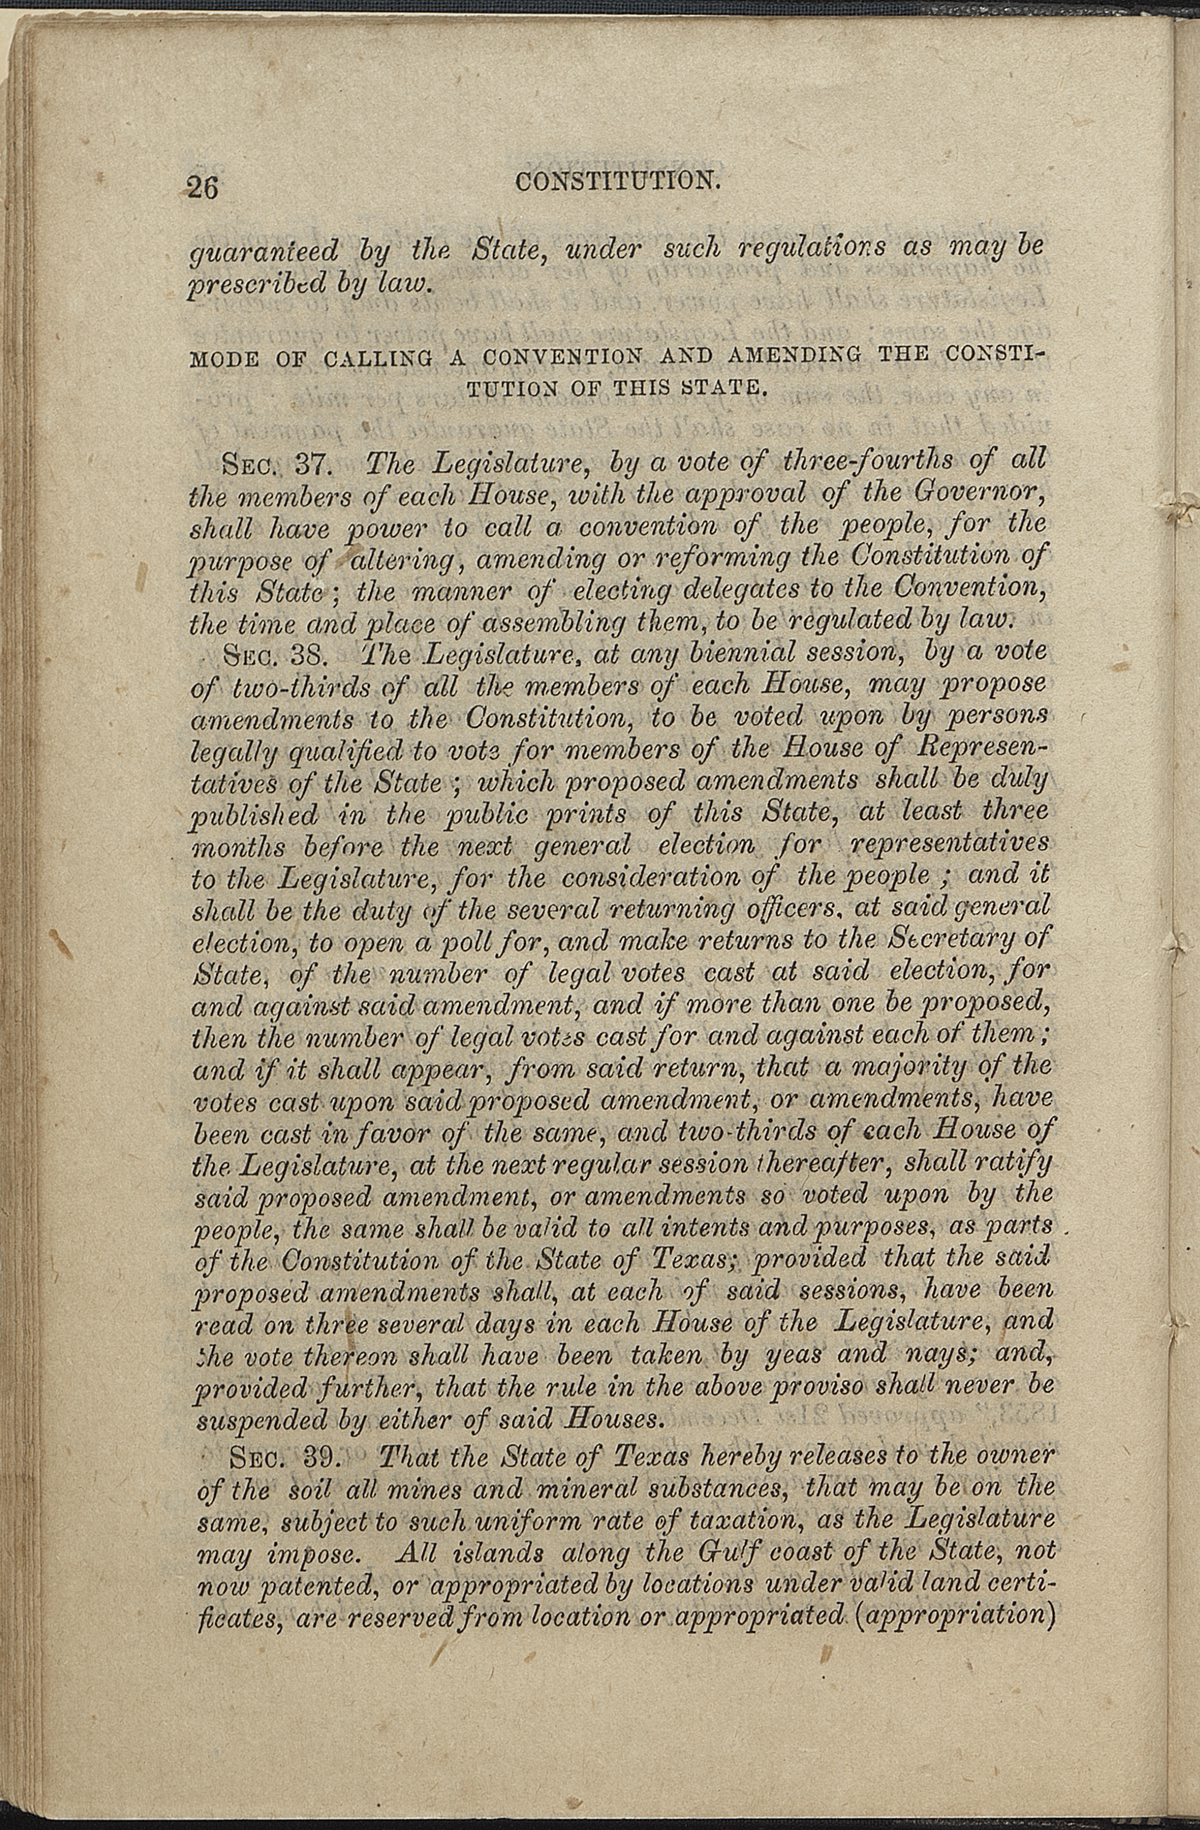 Article VII, Sections 36-39